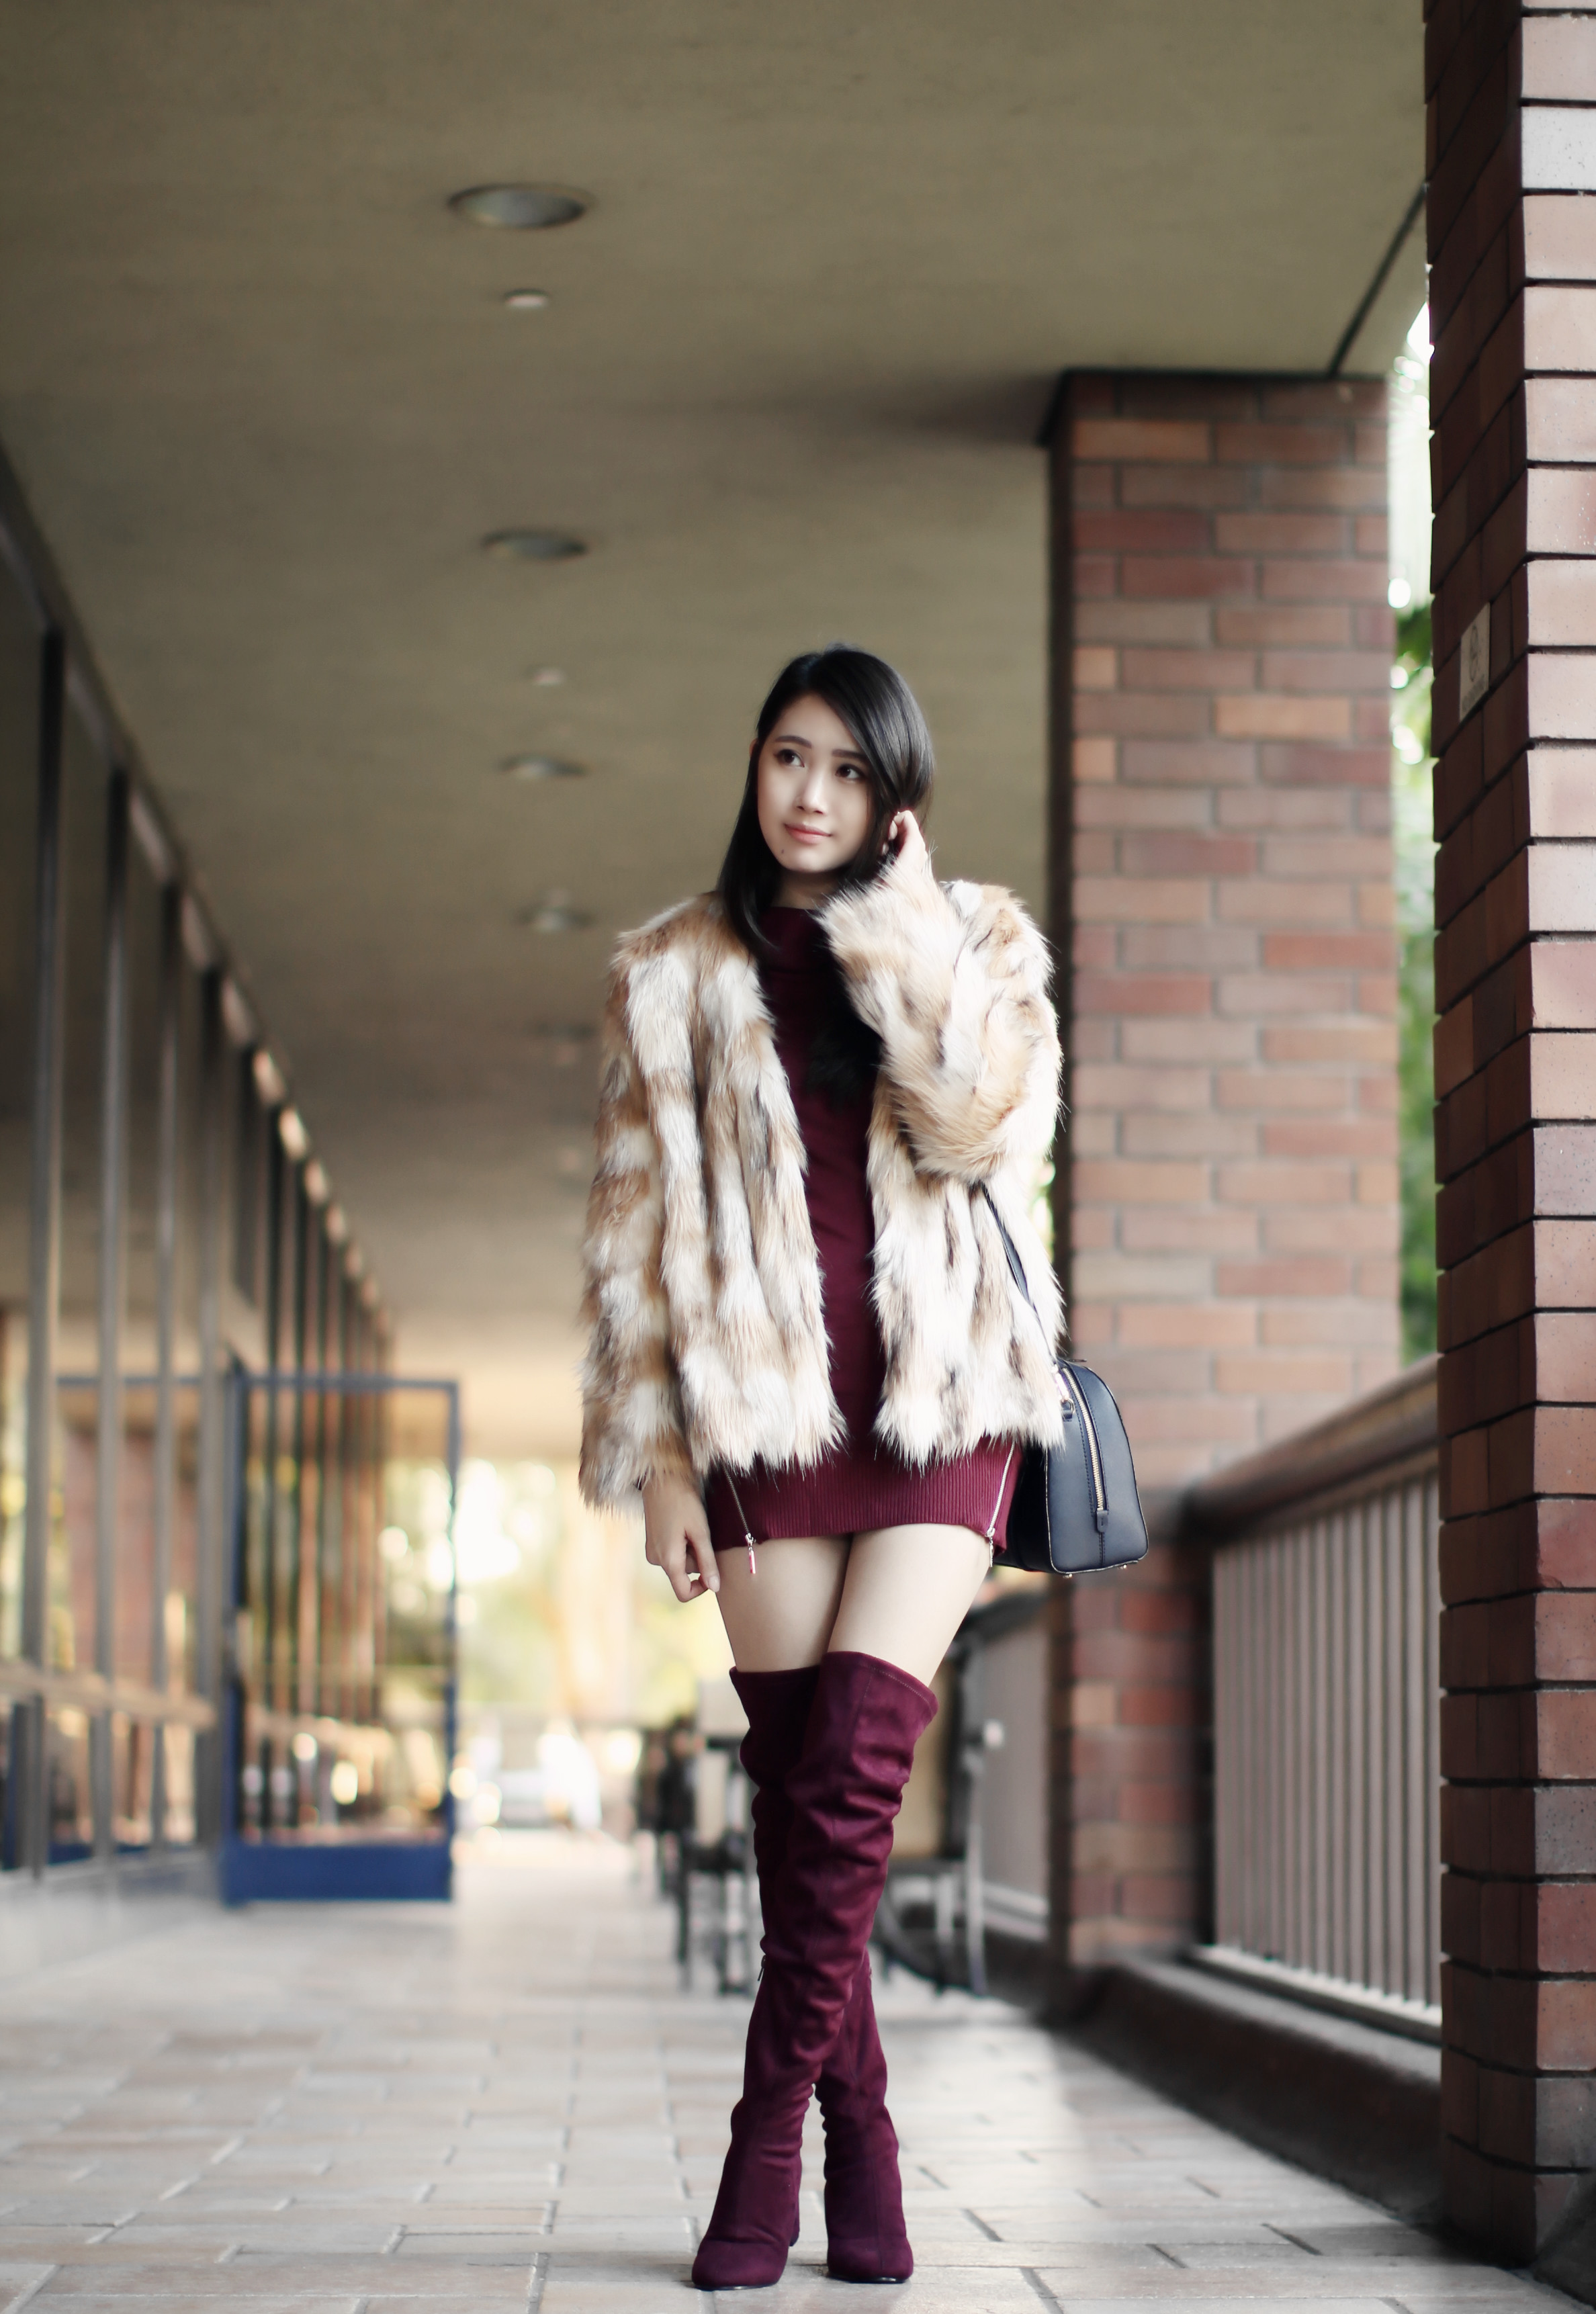 3781-ootd-fashion-style-outfitoftheday-wiwt-vincecamuto-fauxfur-otkboots-fallfashion-forever21-f21-hollister-koreanfashion-sponsored-elizabeeetht-clothestoyouuu